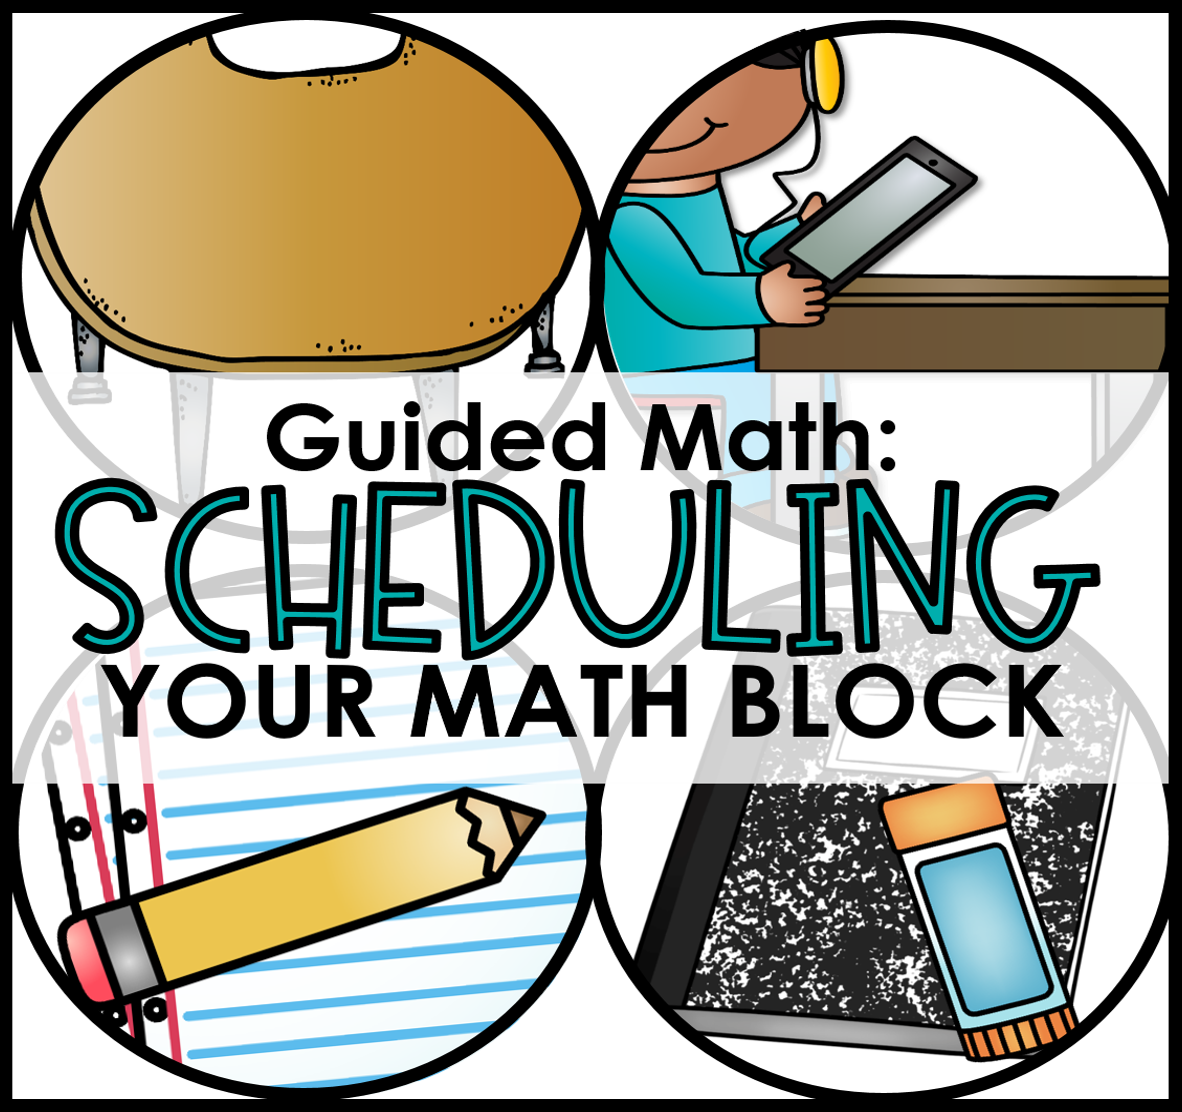 scheduling your guided math block - tunstall's teaching tidbits